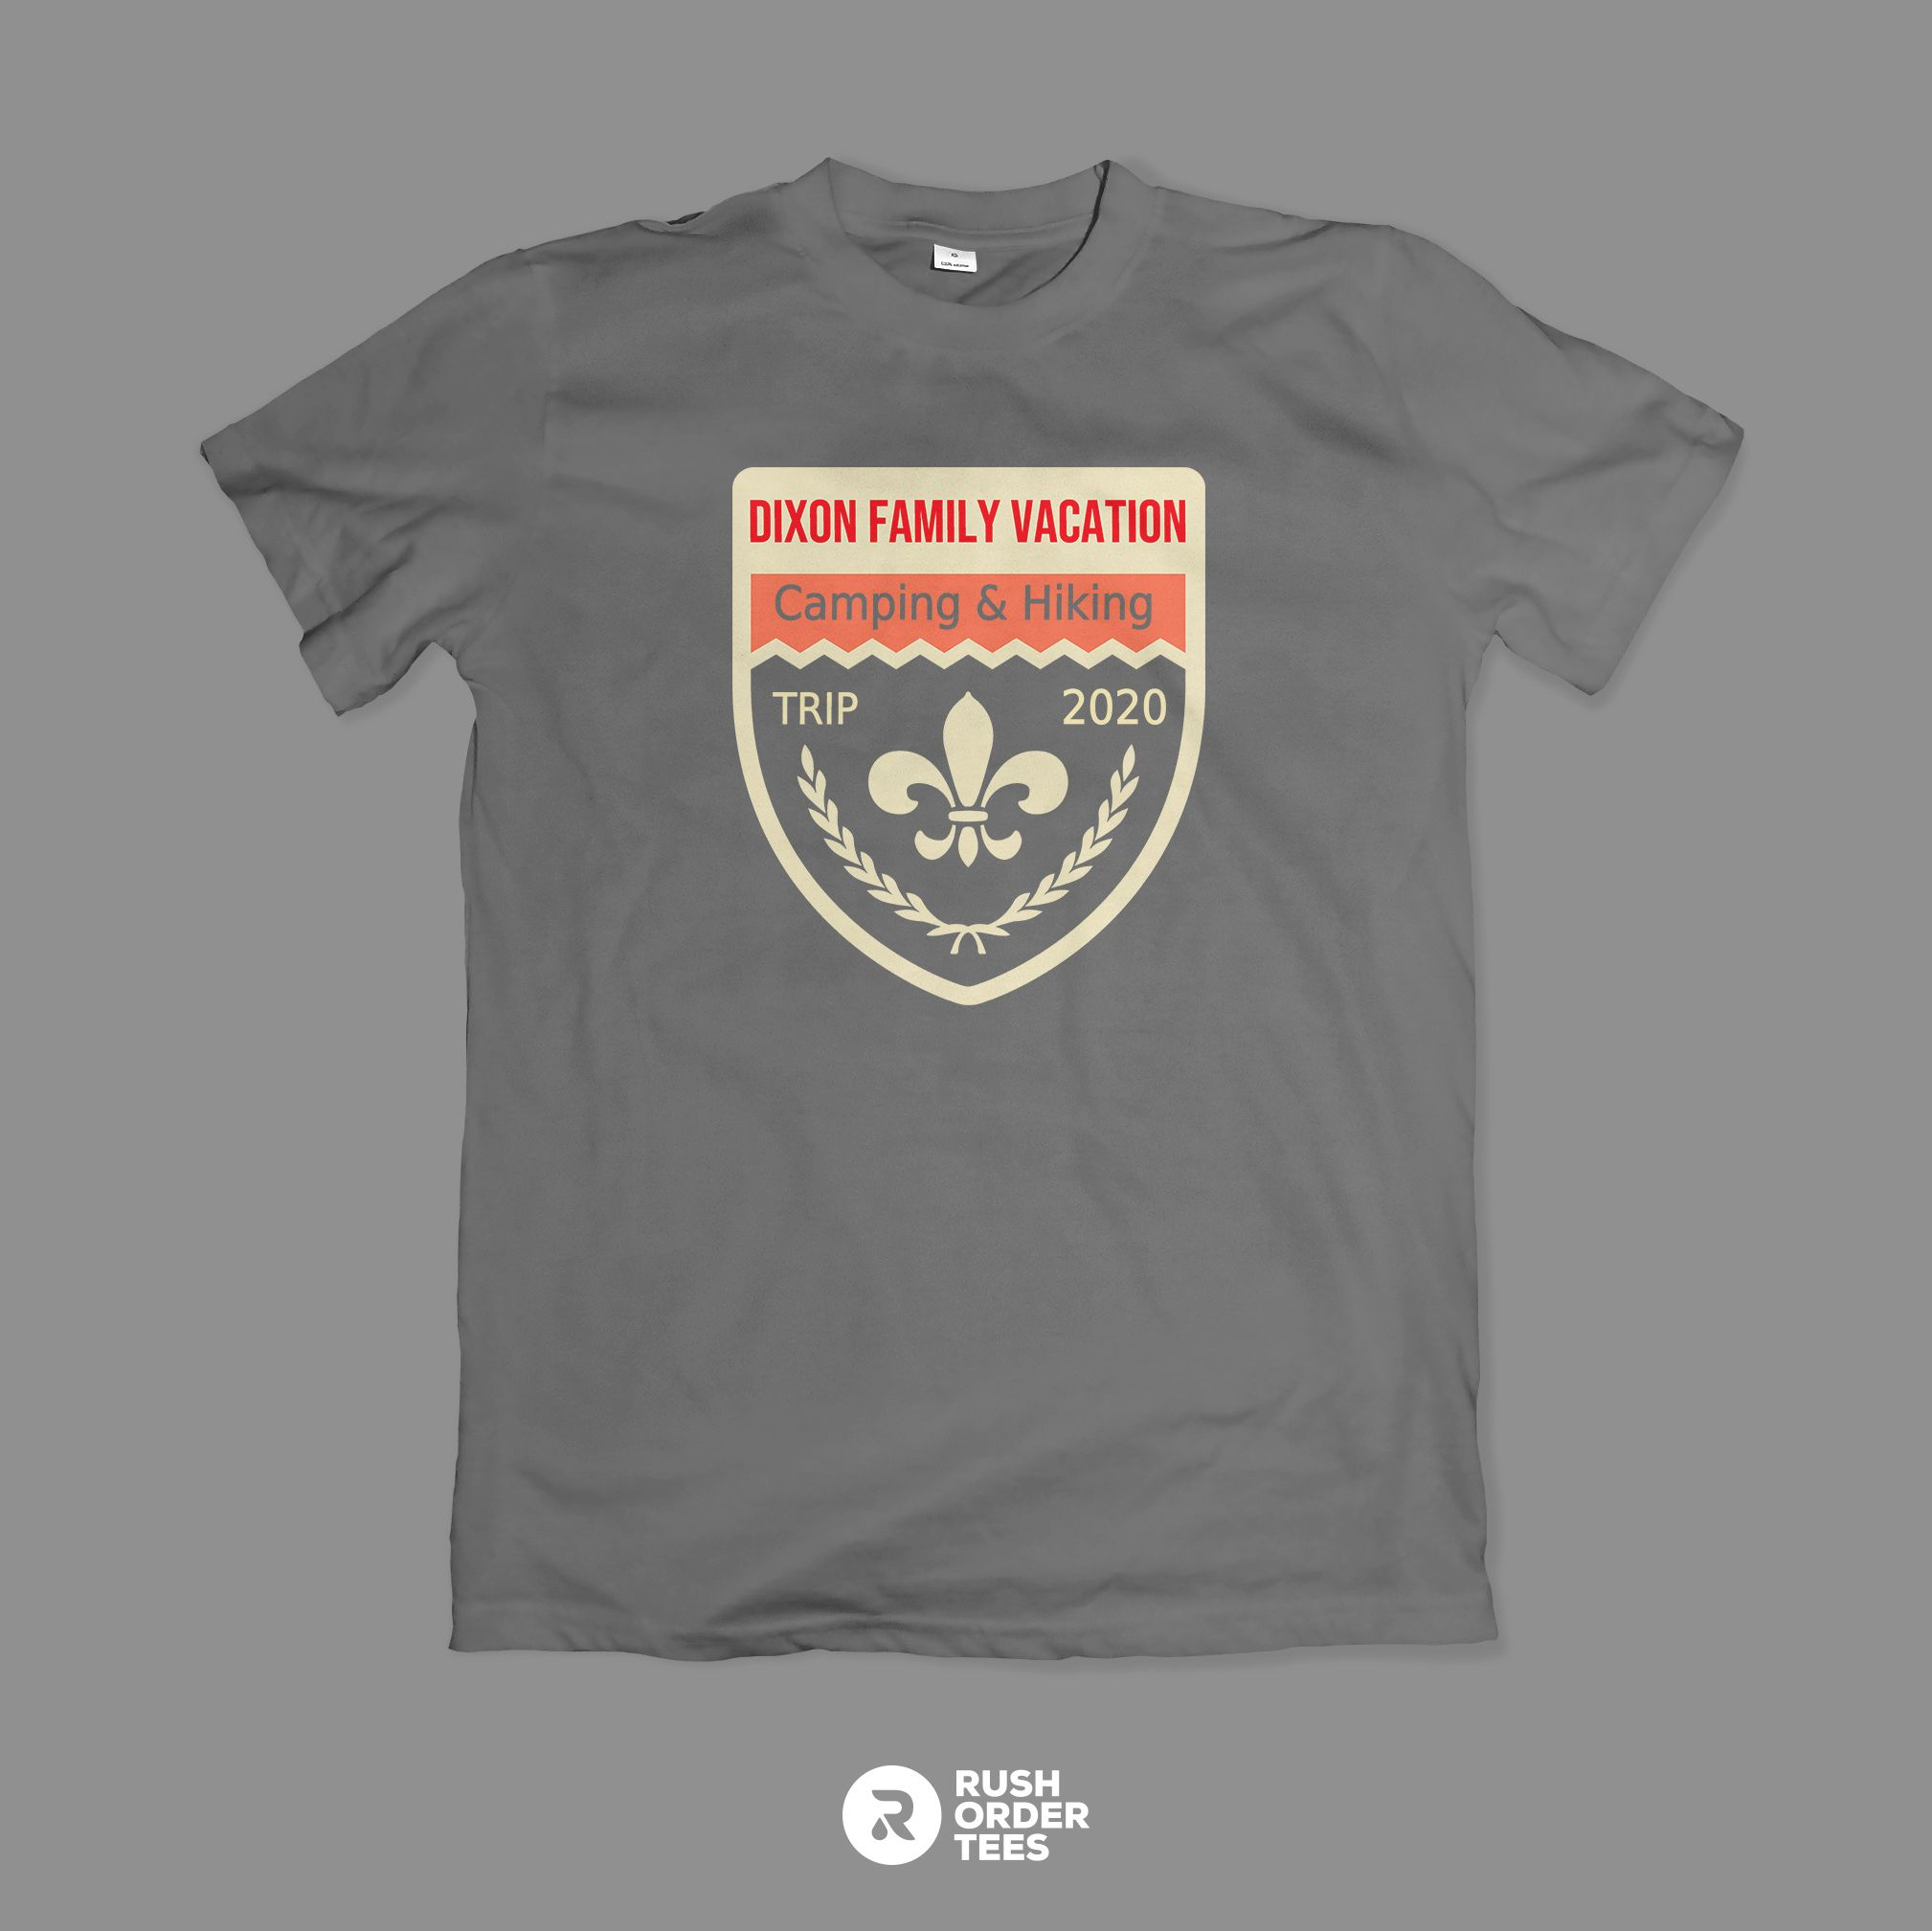 Vacation T Shirt Design Templates Rushordertees Com In 2020 T Shirt Design Template Tshirt Designs Shirt Designs,Small House Front Design Ideas